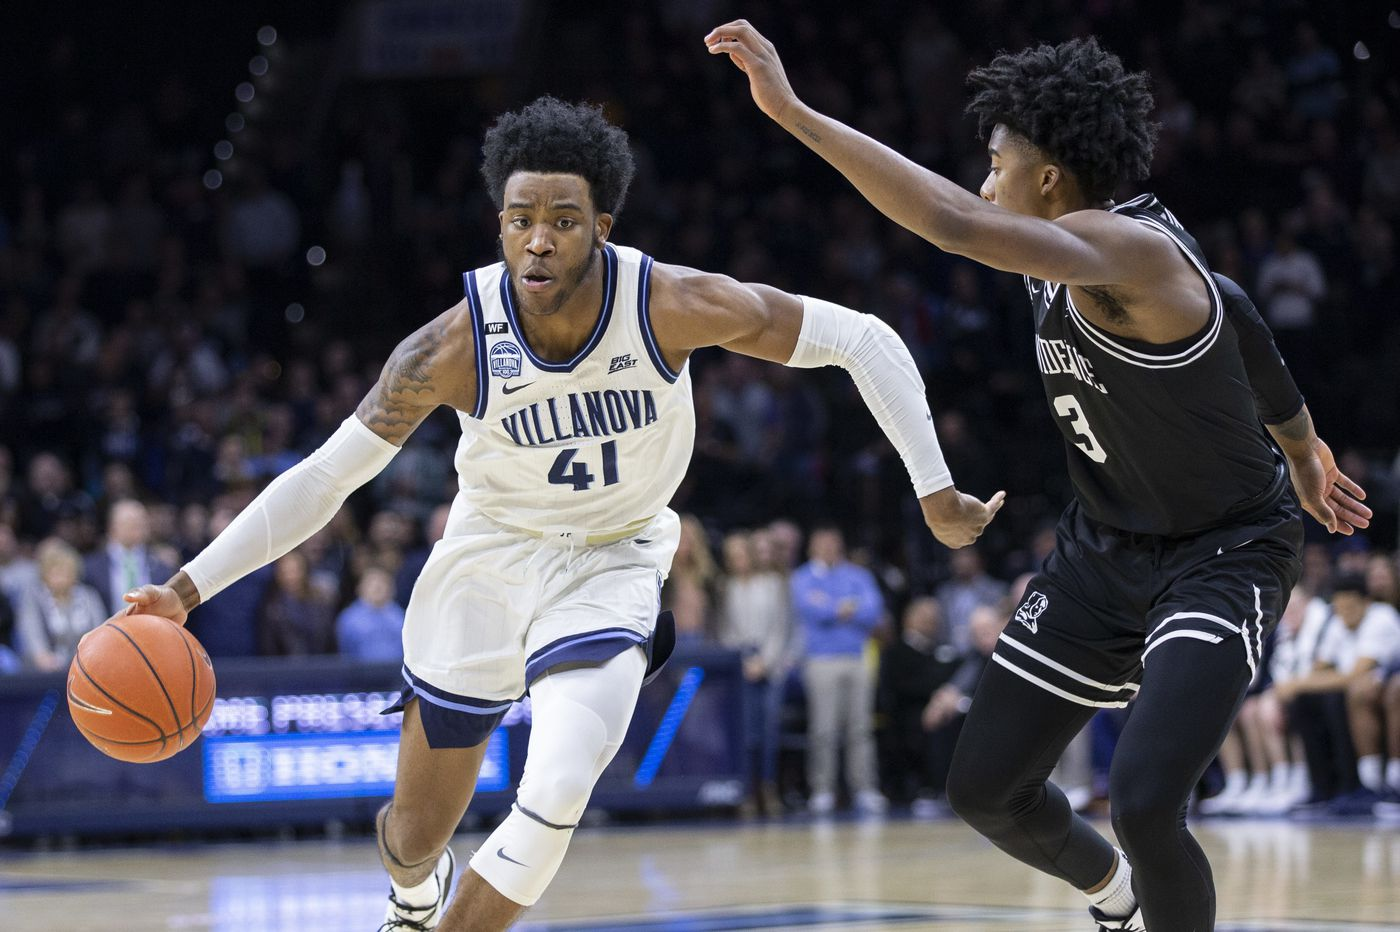 Villanova's Saddiq Bey selected 19th by the Brooklyn Nets in the first round of the NBA Draft, likely headed to Detroit